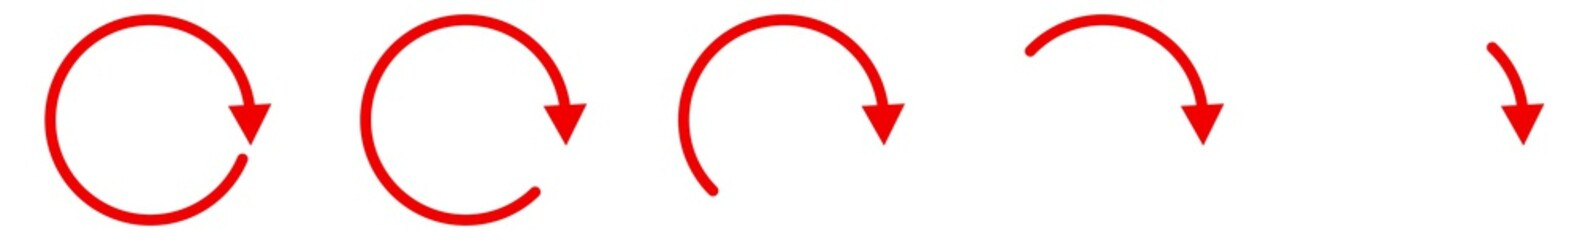 Arrow Icon Red | Circle Arrows | Infographic Illustration | Direction Symbol | Curved Loading Logo | Up Sign | Isolated | Variations